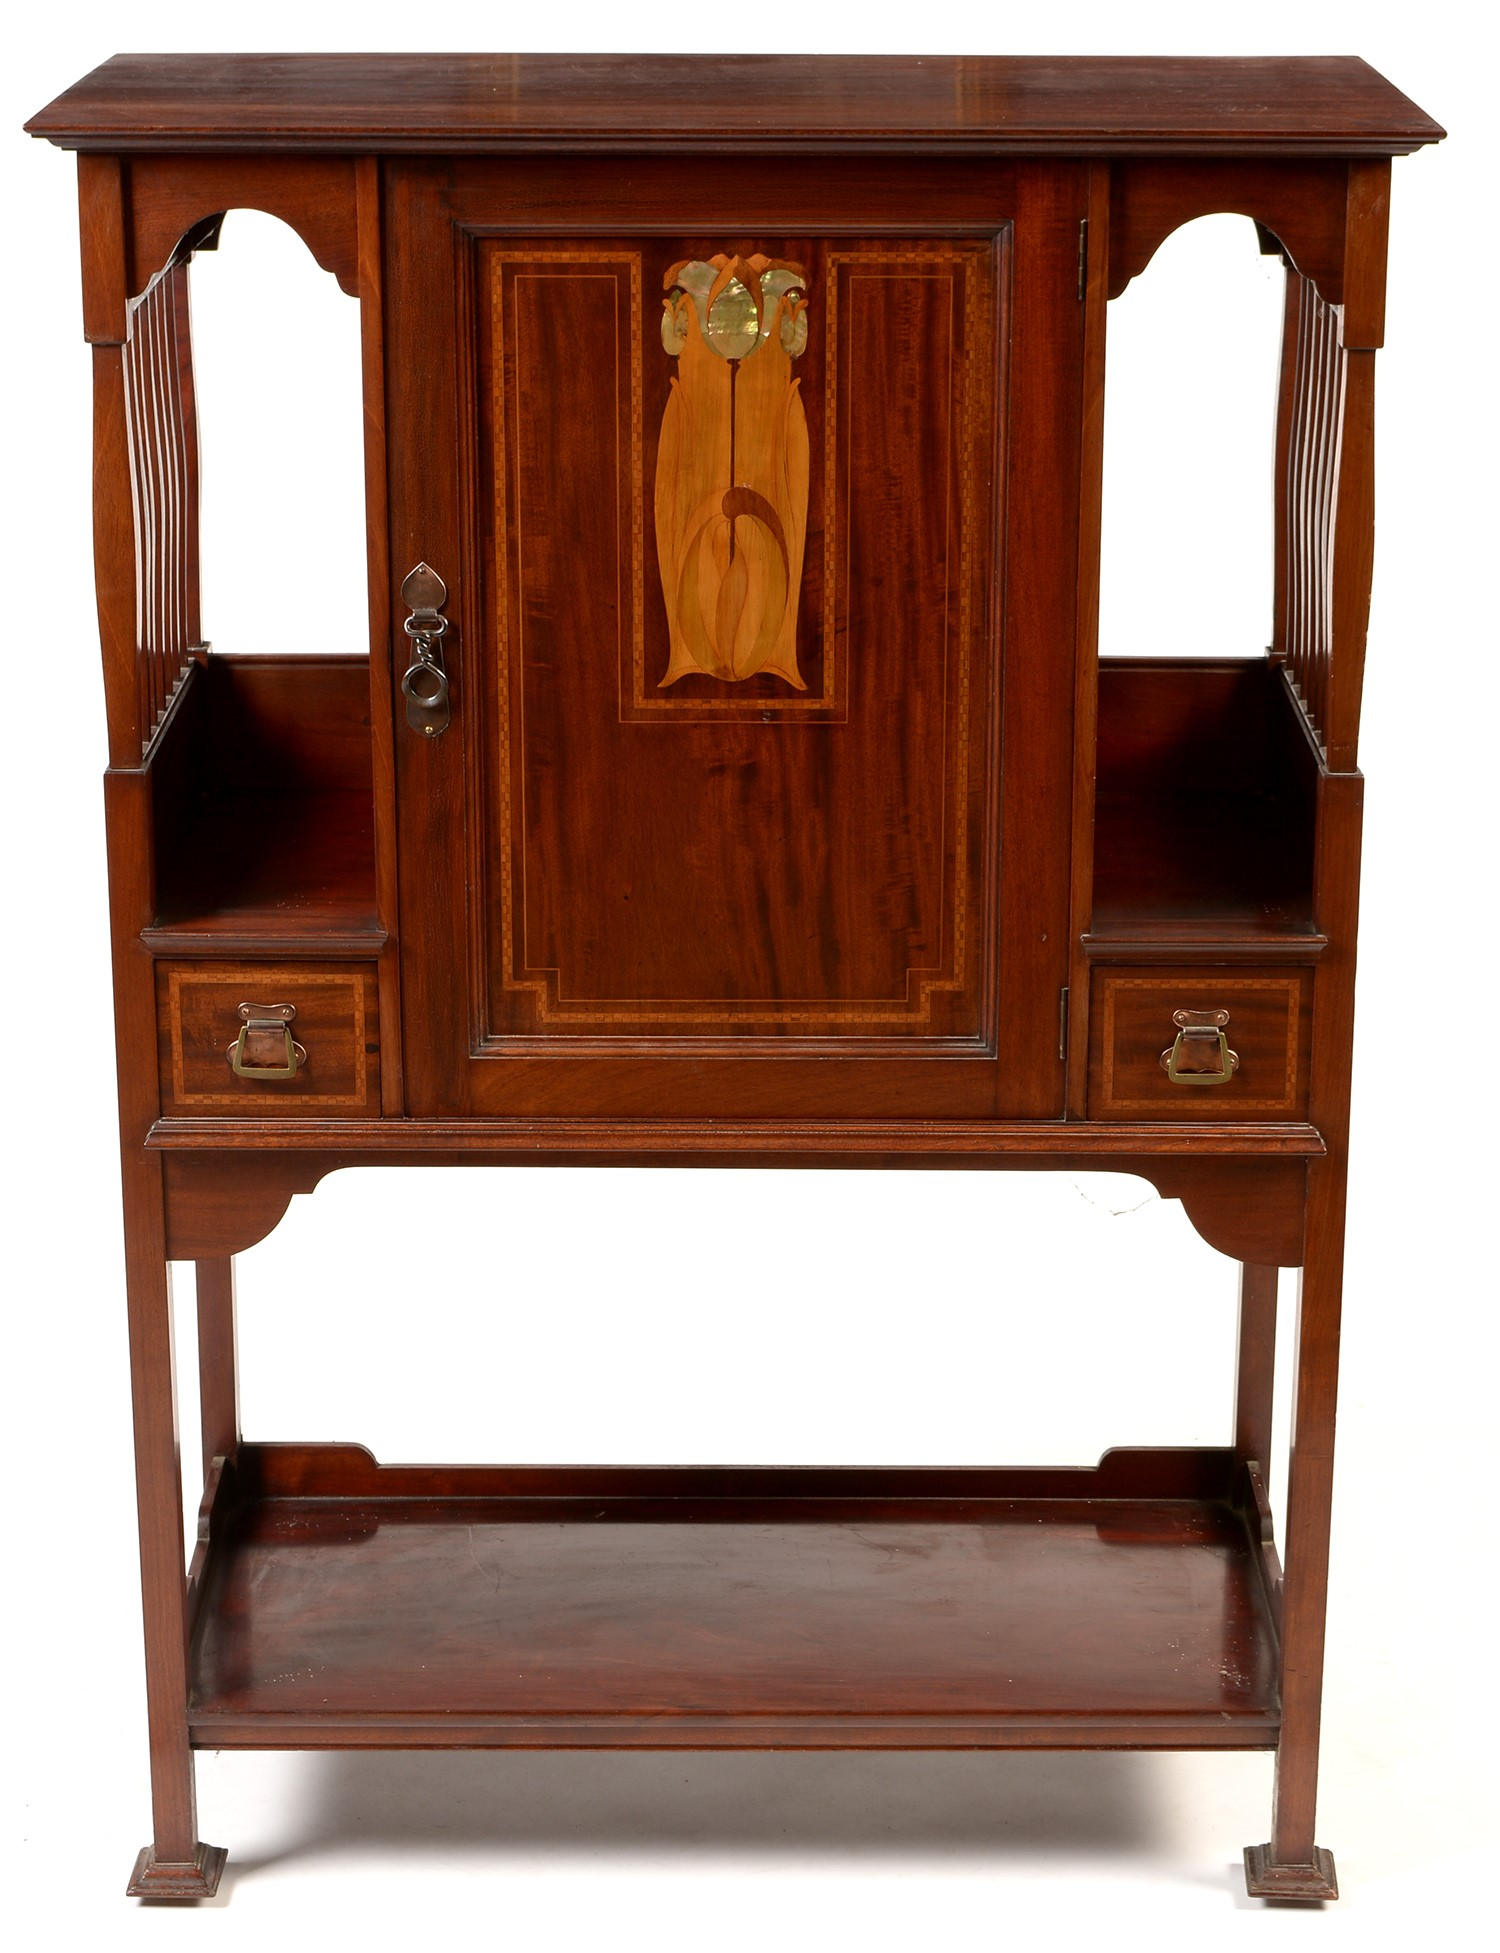 Lot 1066 - Attributed to Shapland & Petter: an Art Nouveau inlaid mahogany music cabinet.